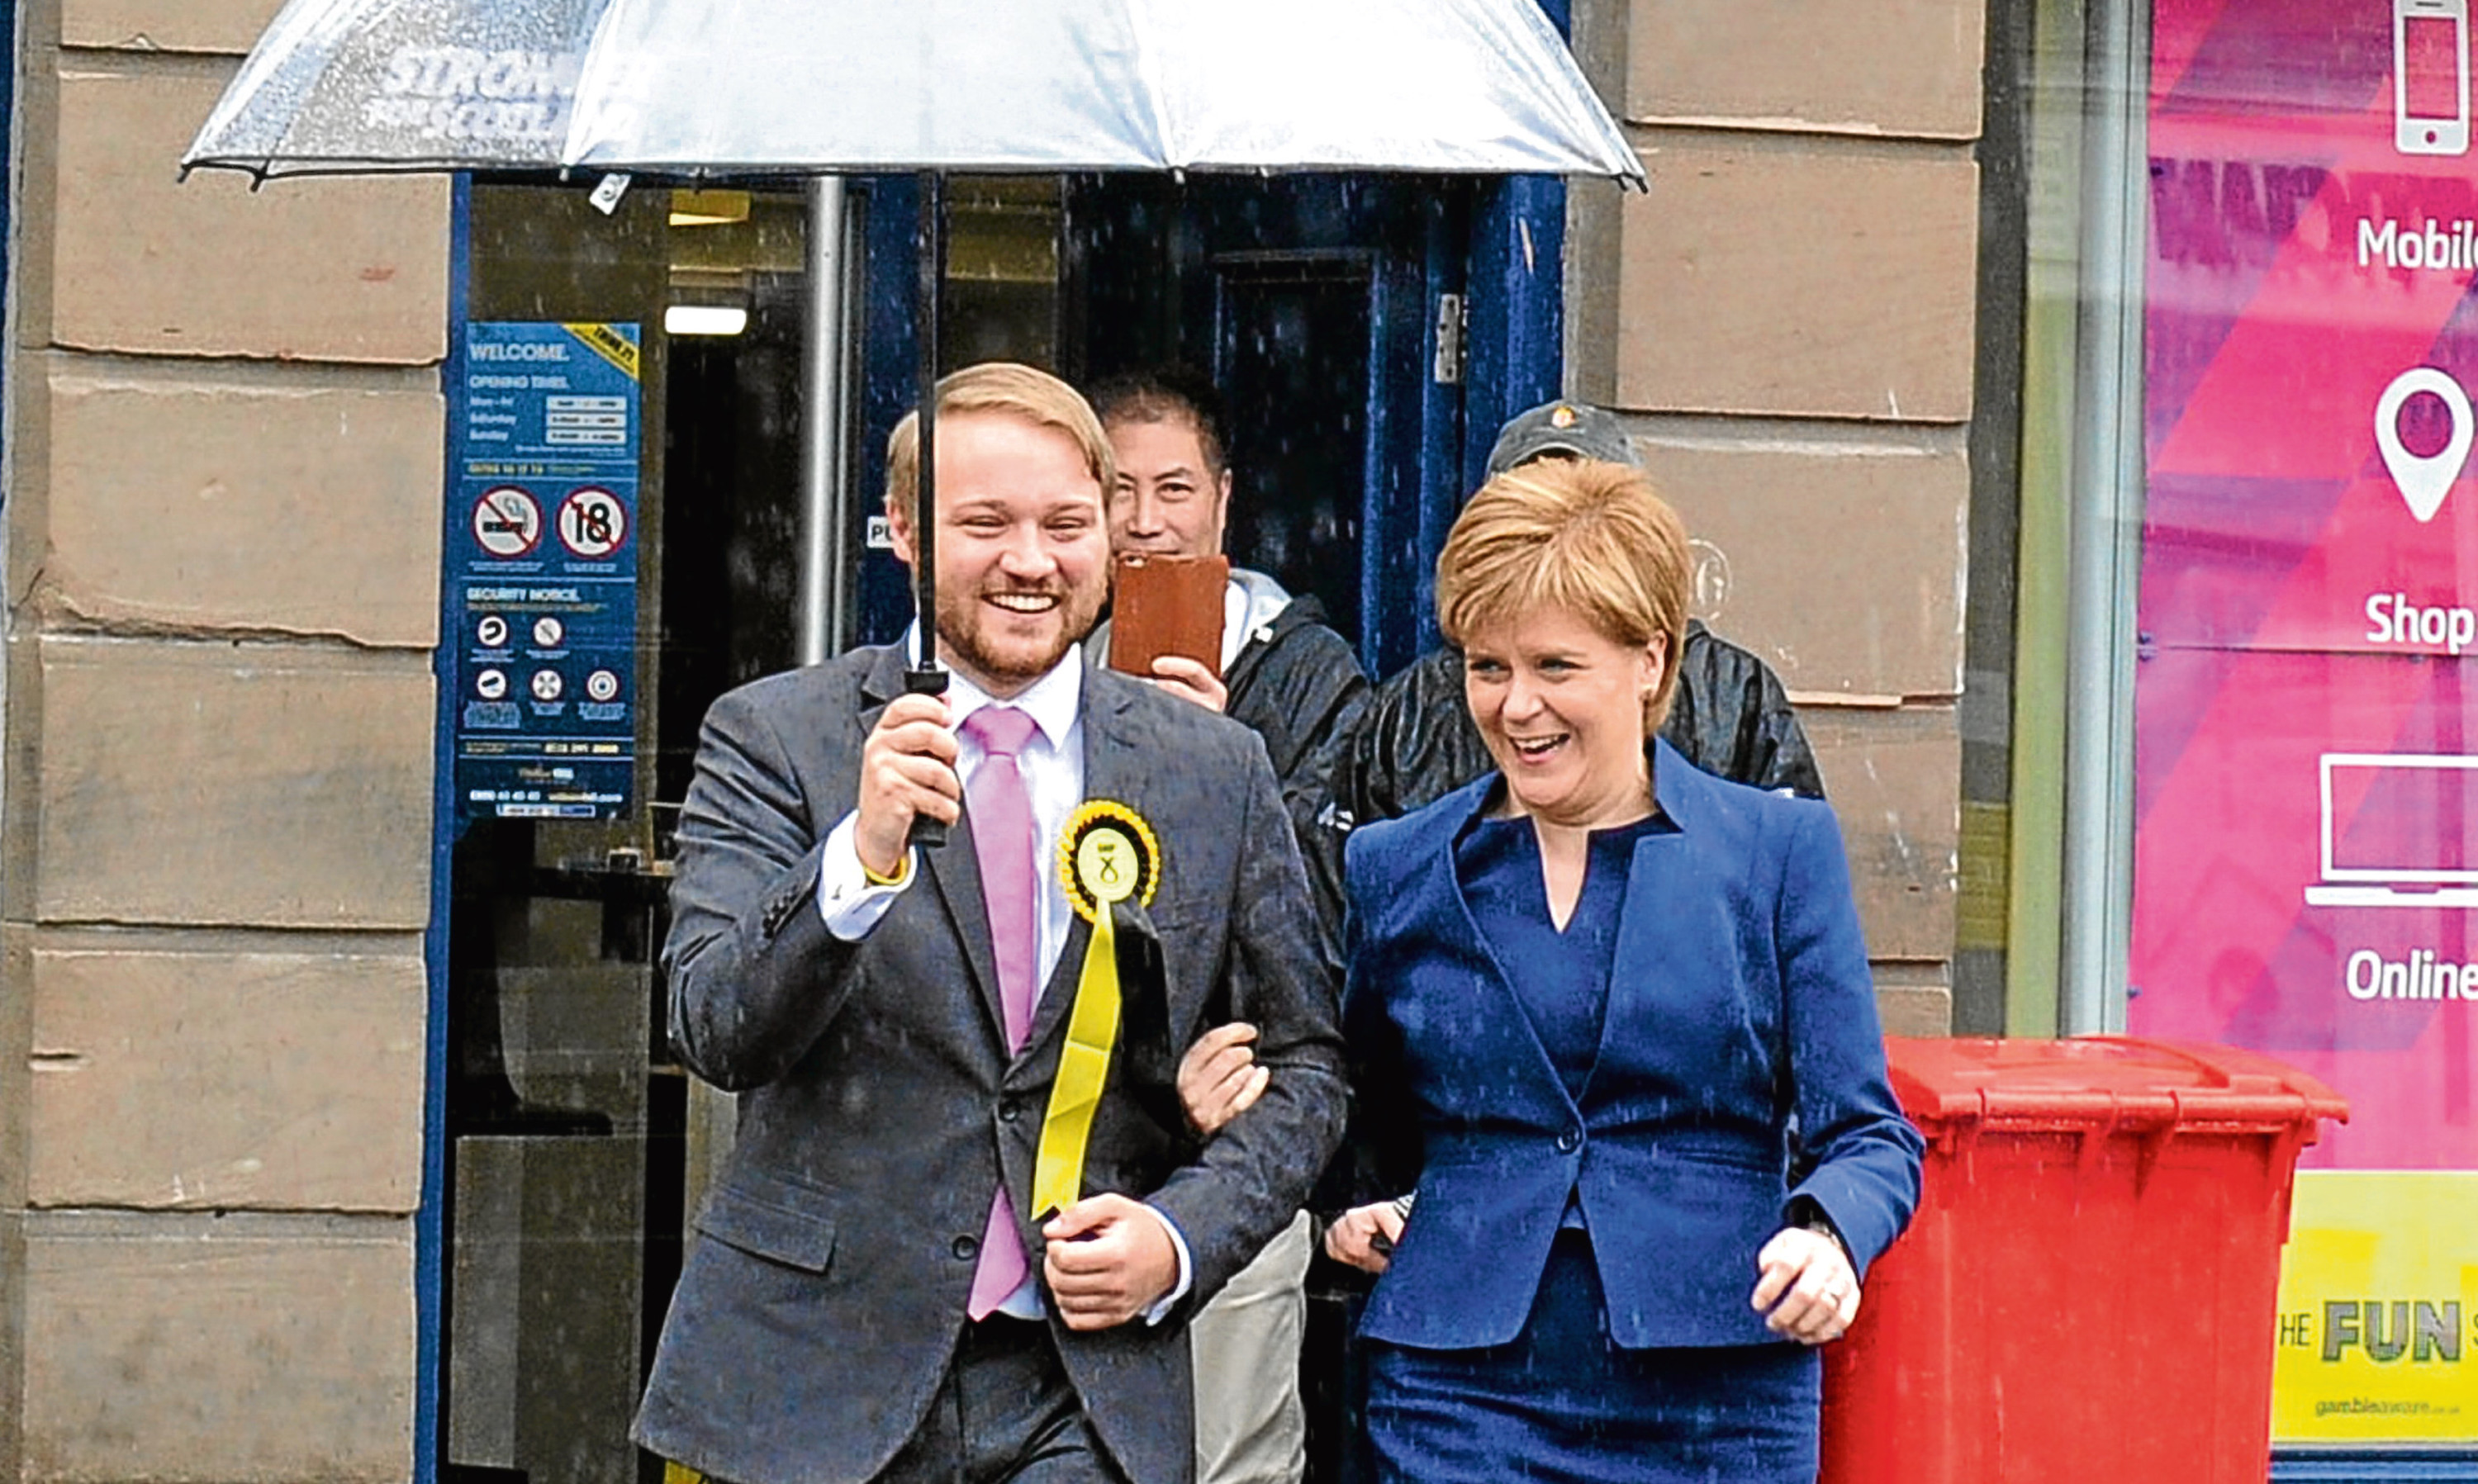 Raining on her parade? Is Nicola Sturgeon, pictured with candidate Stuart Donaldson, panicking at her partys fall in support over her insistence on a second referendum? Jenny thinks so.